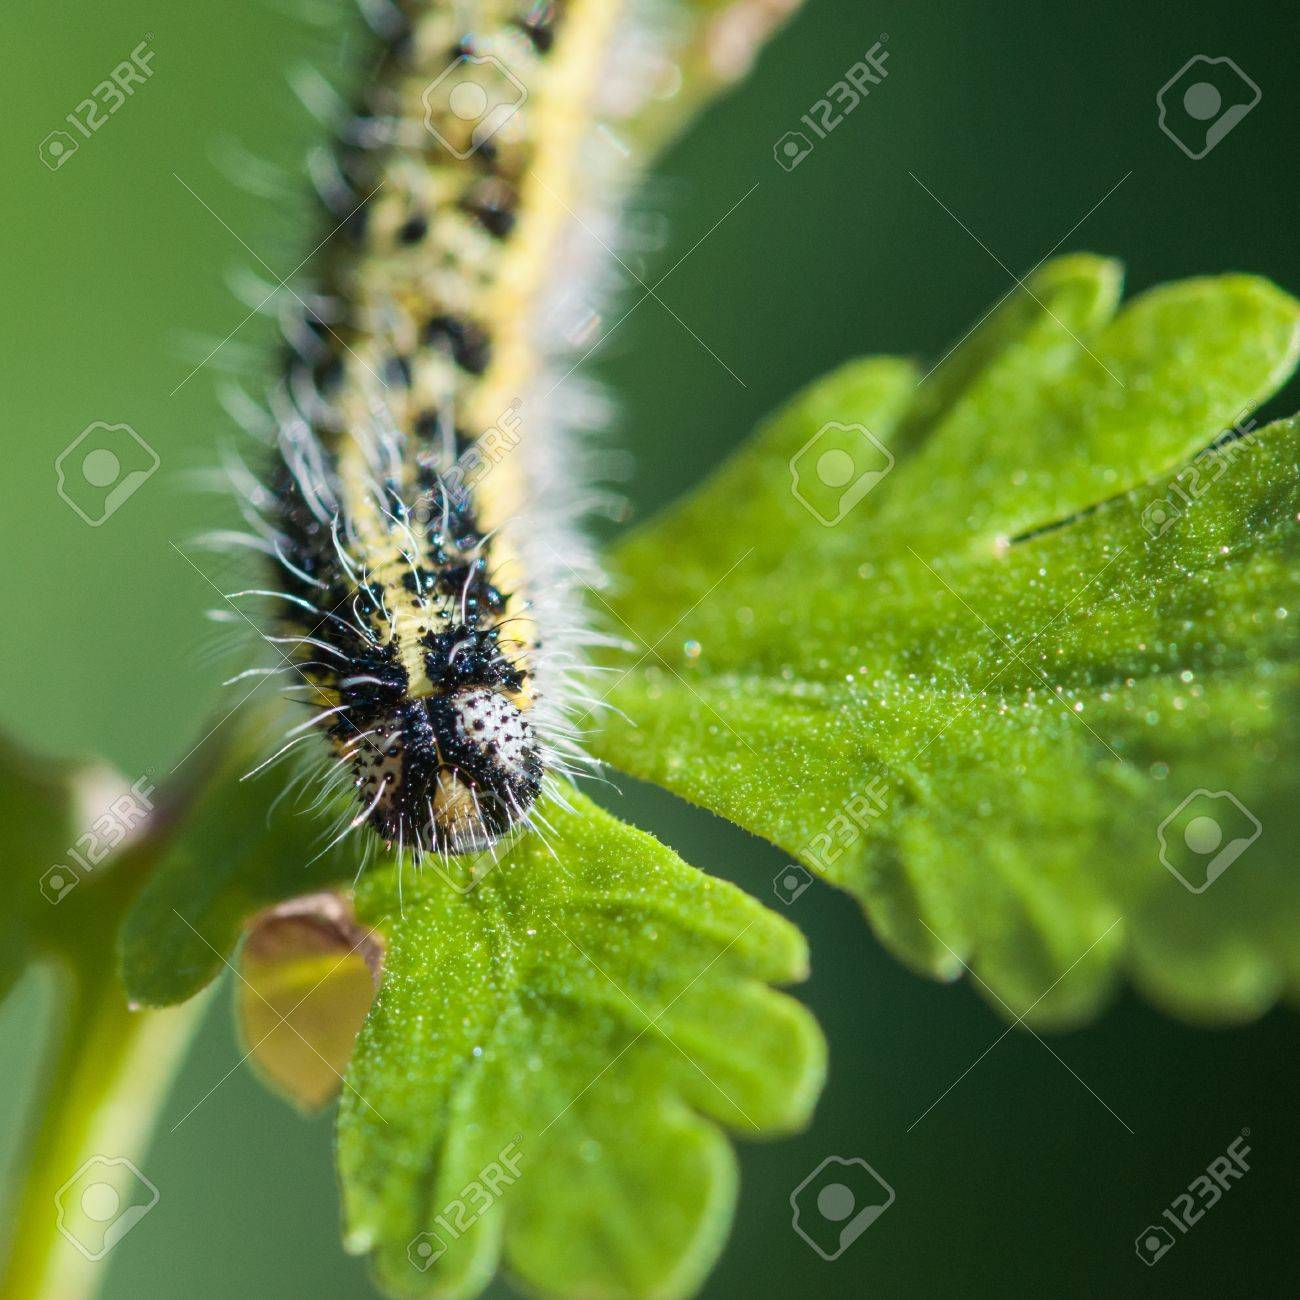 A close-up of a large white butterfly caterpillar Stock Photo - 15100975